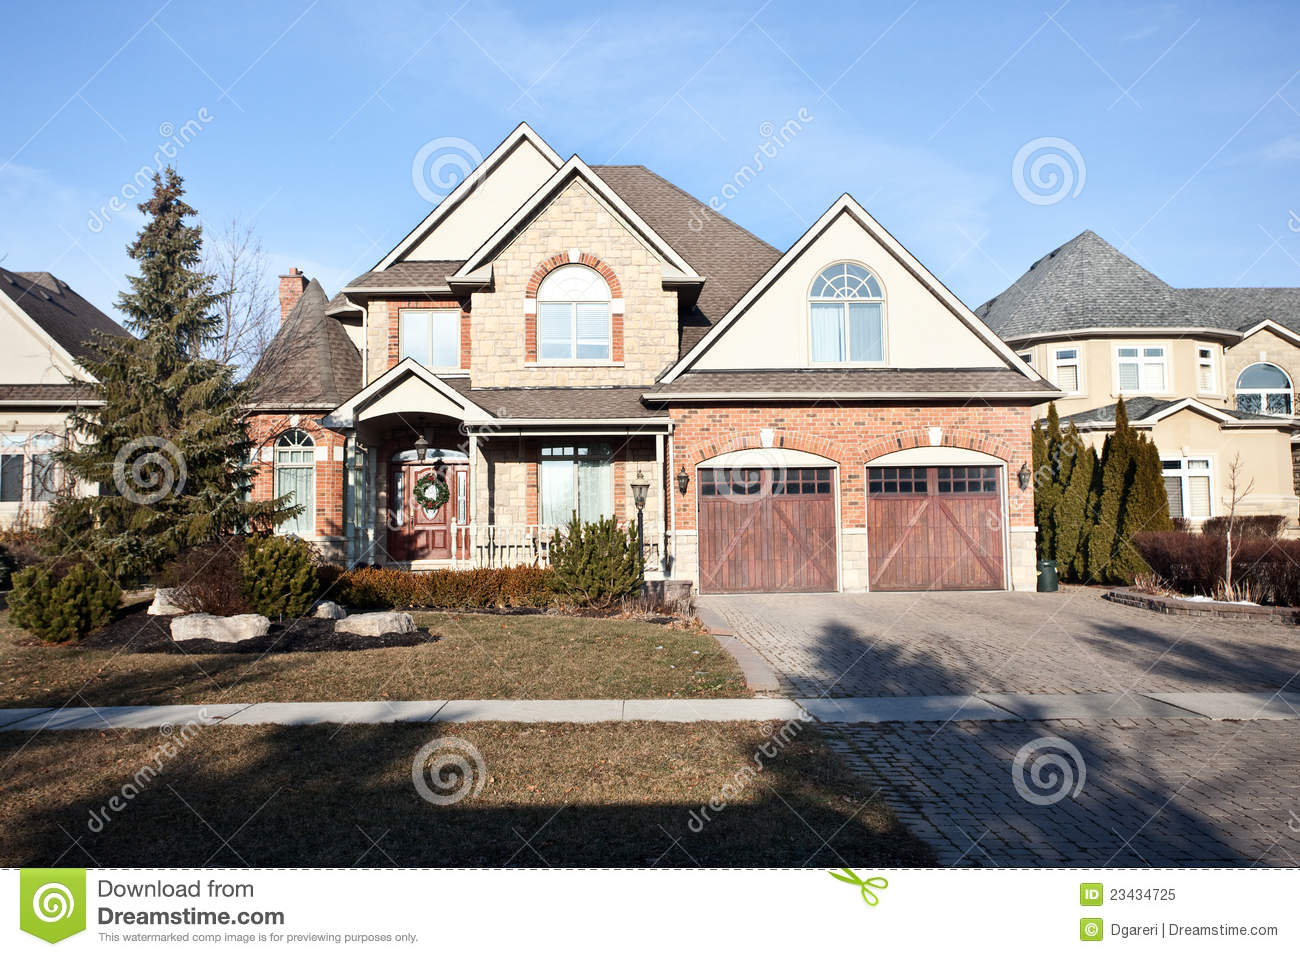 Luxury homes royalty free stock photo image 23434725 for Free luxury home images